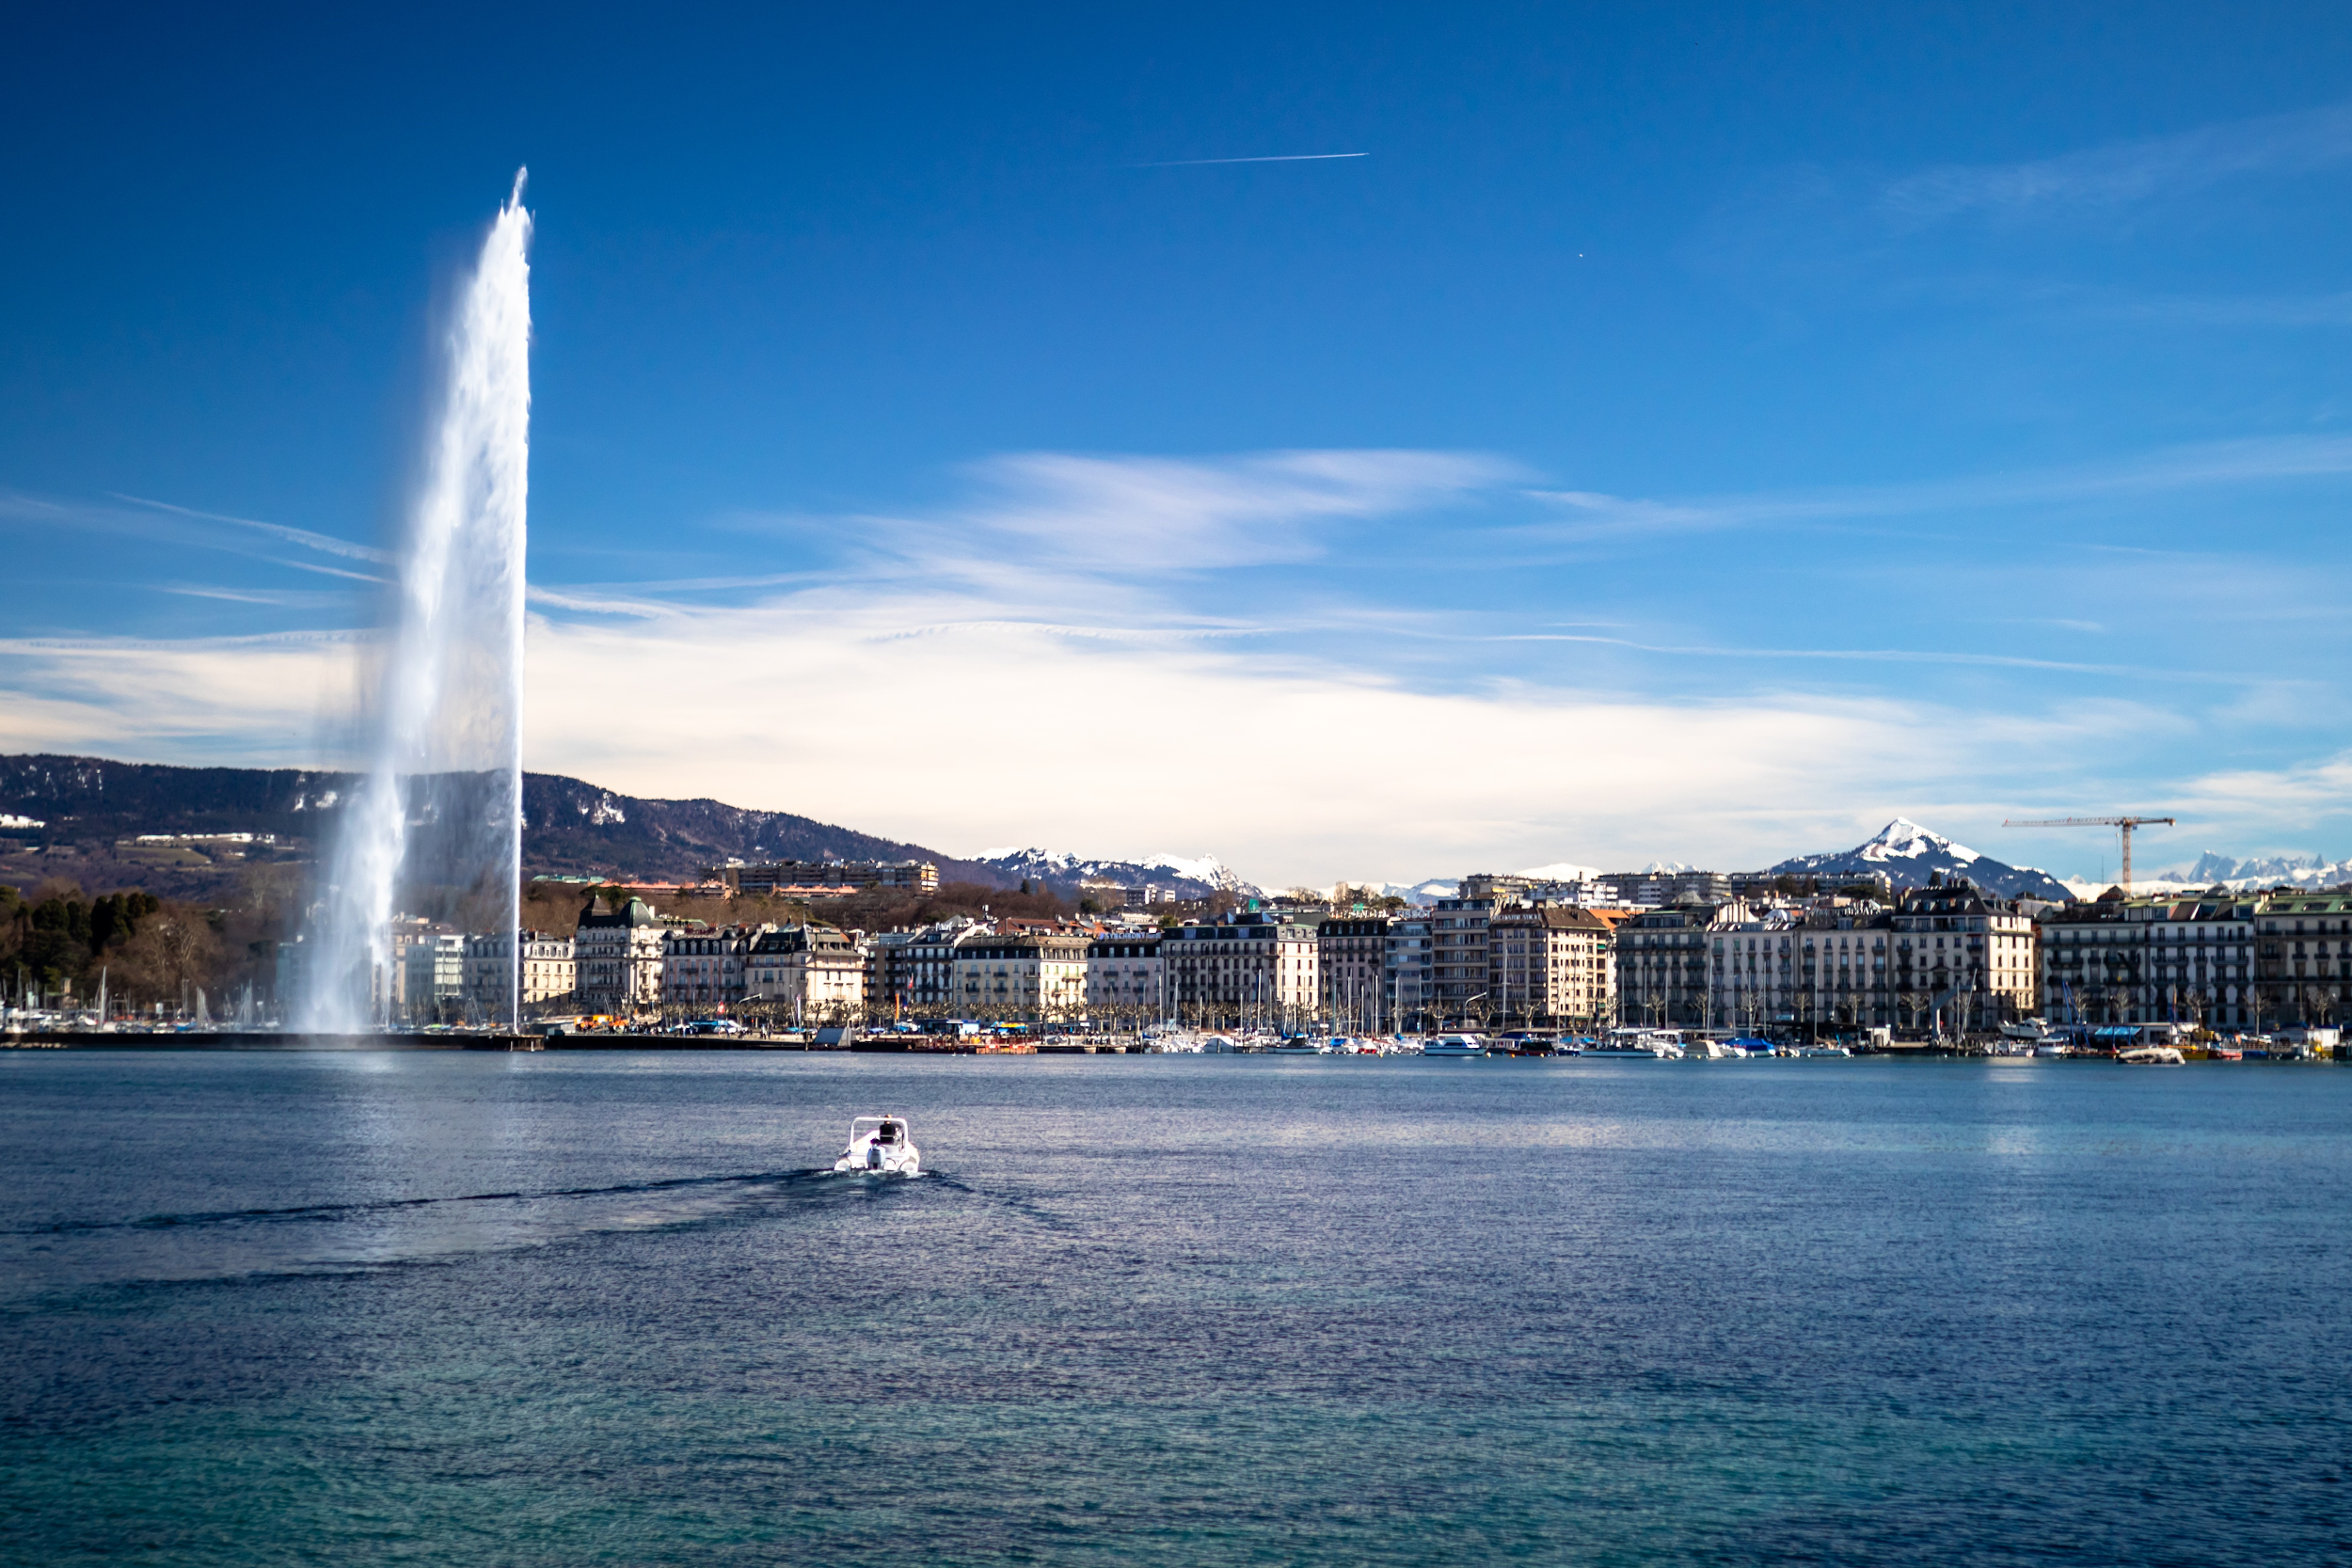 Picture of Geneva city showing lake & buildings